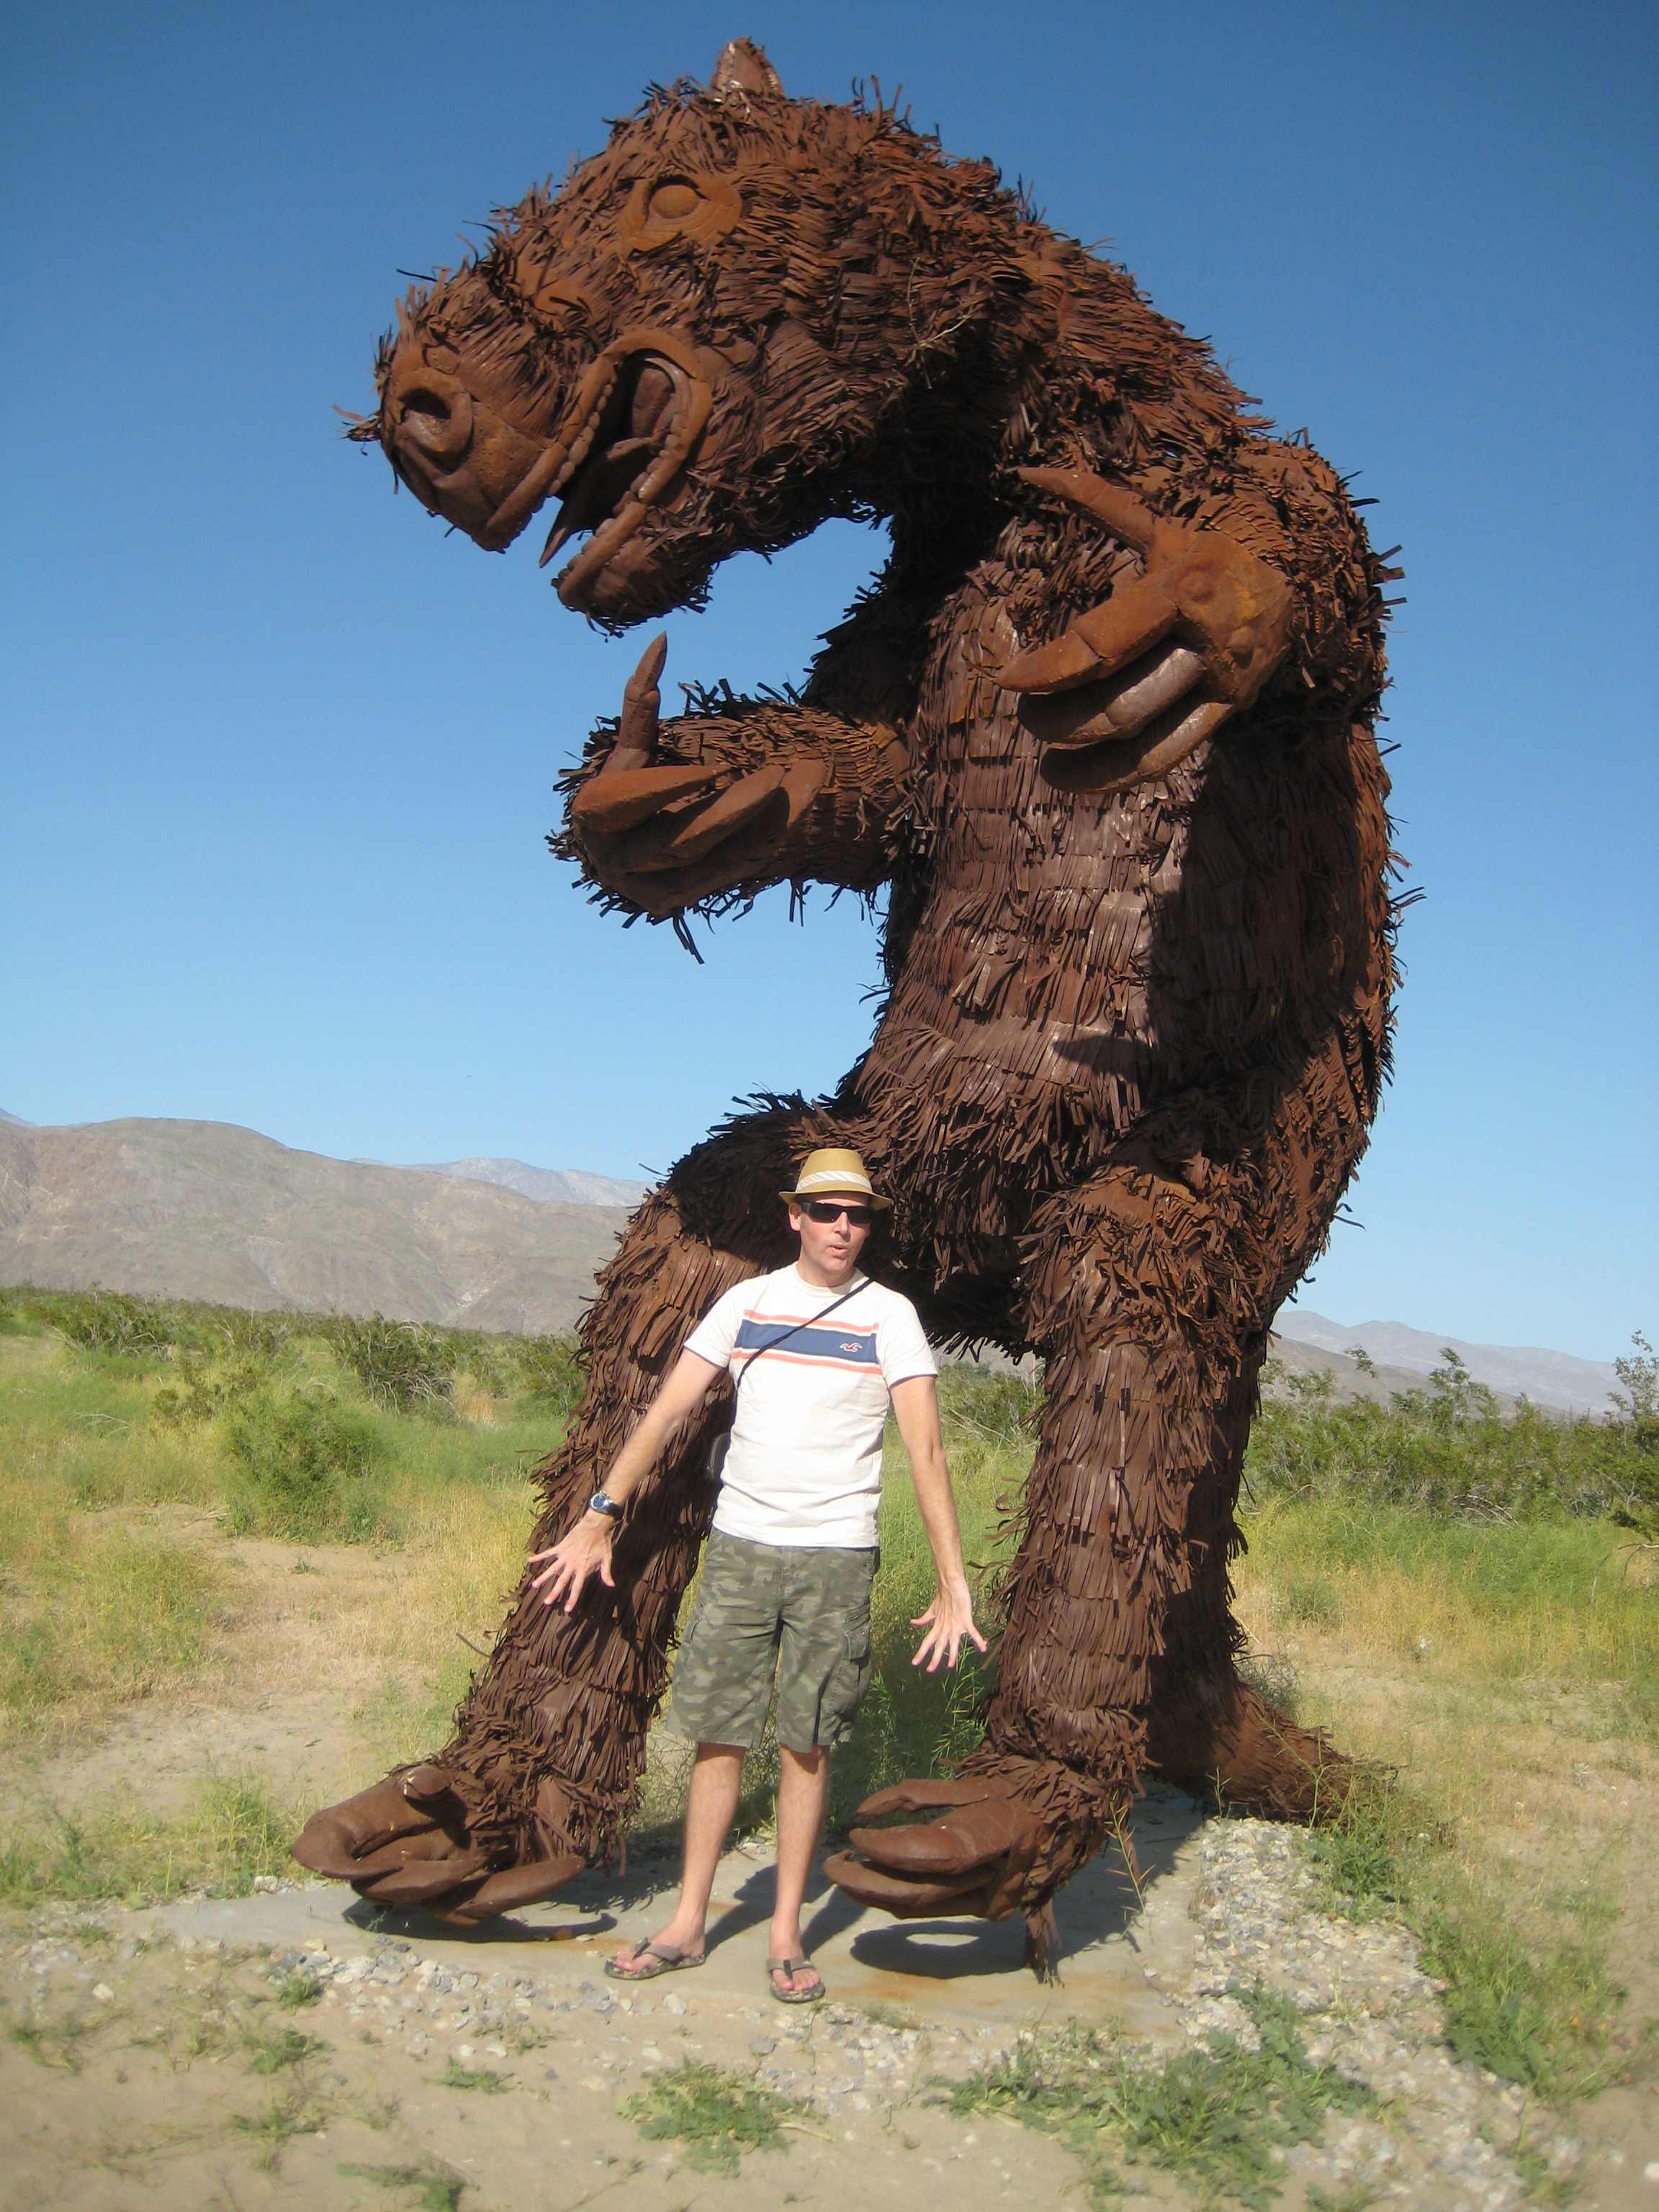 Yours truly with Giant Sloth at Galleta Meadows, Borrego Springs!